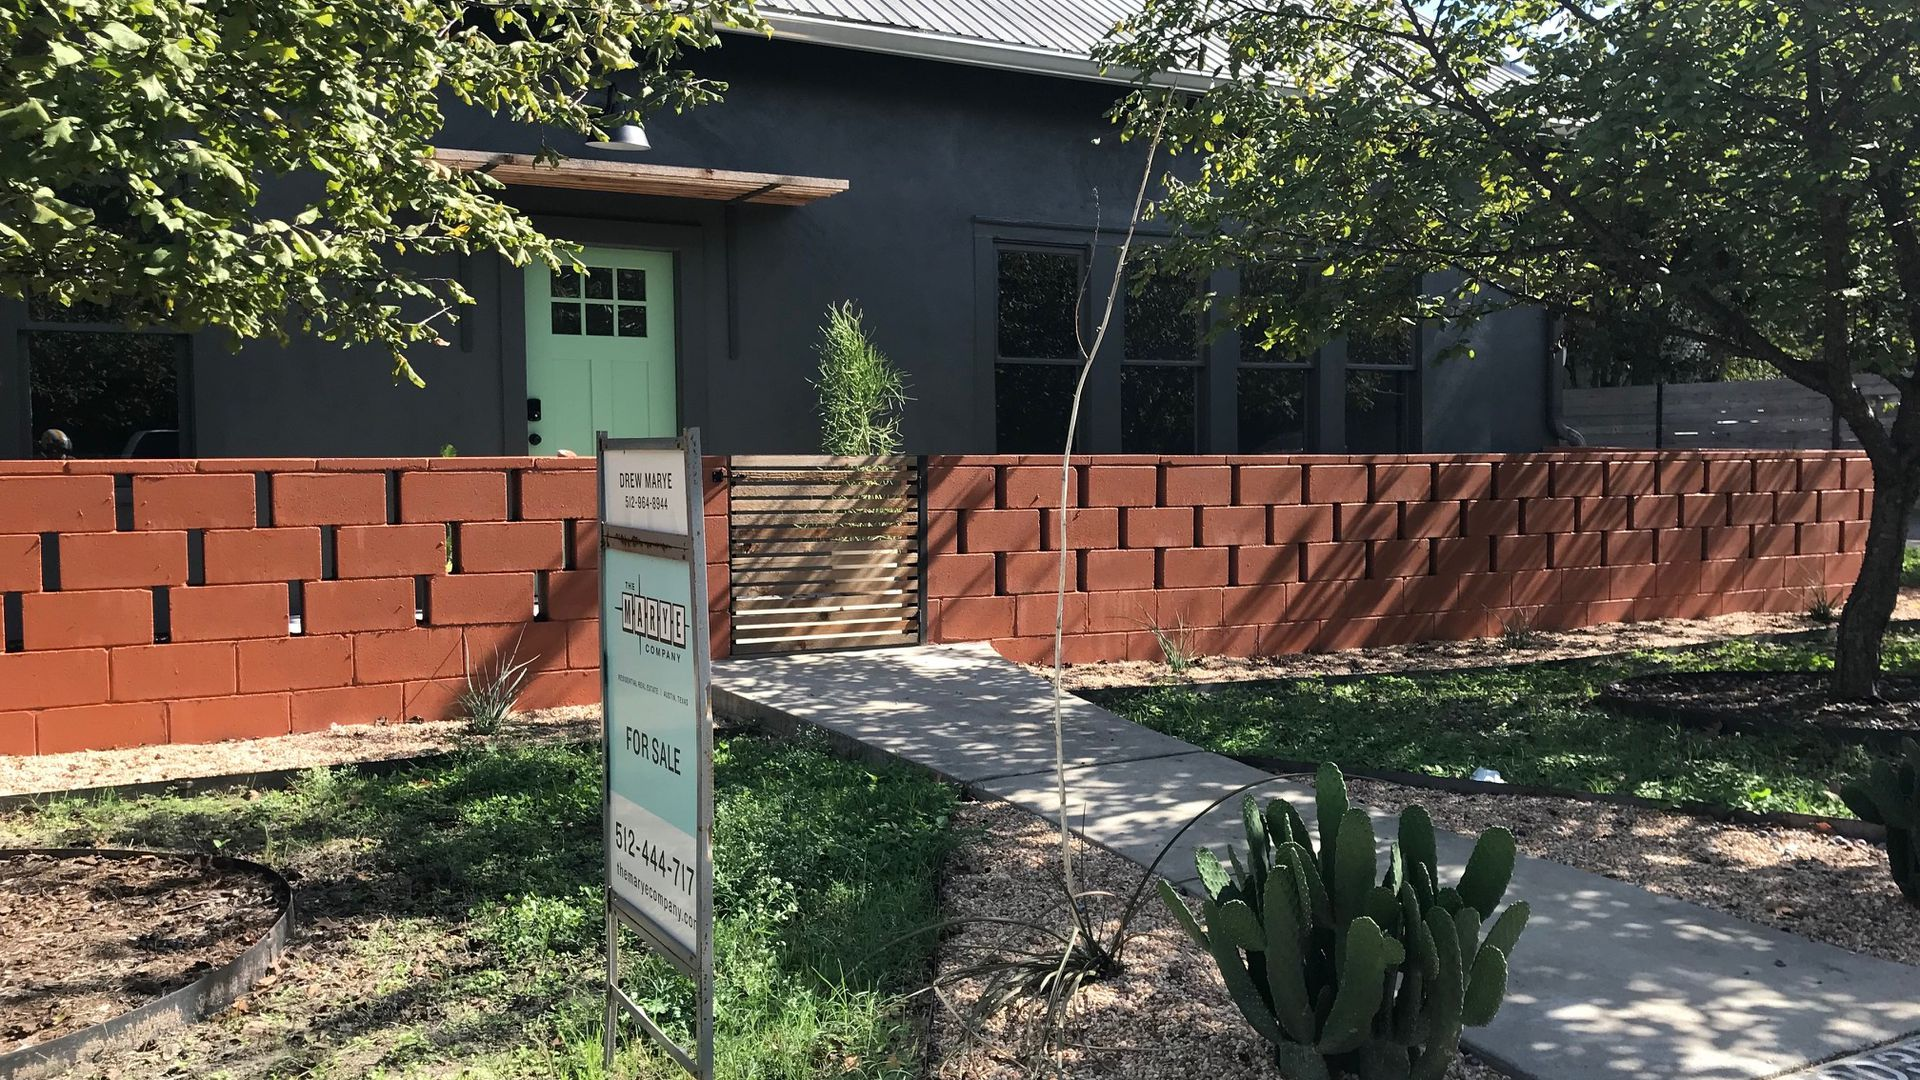 A house for sale in South Austin.